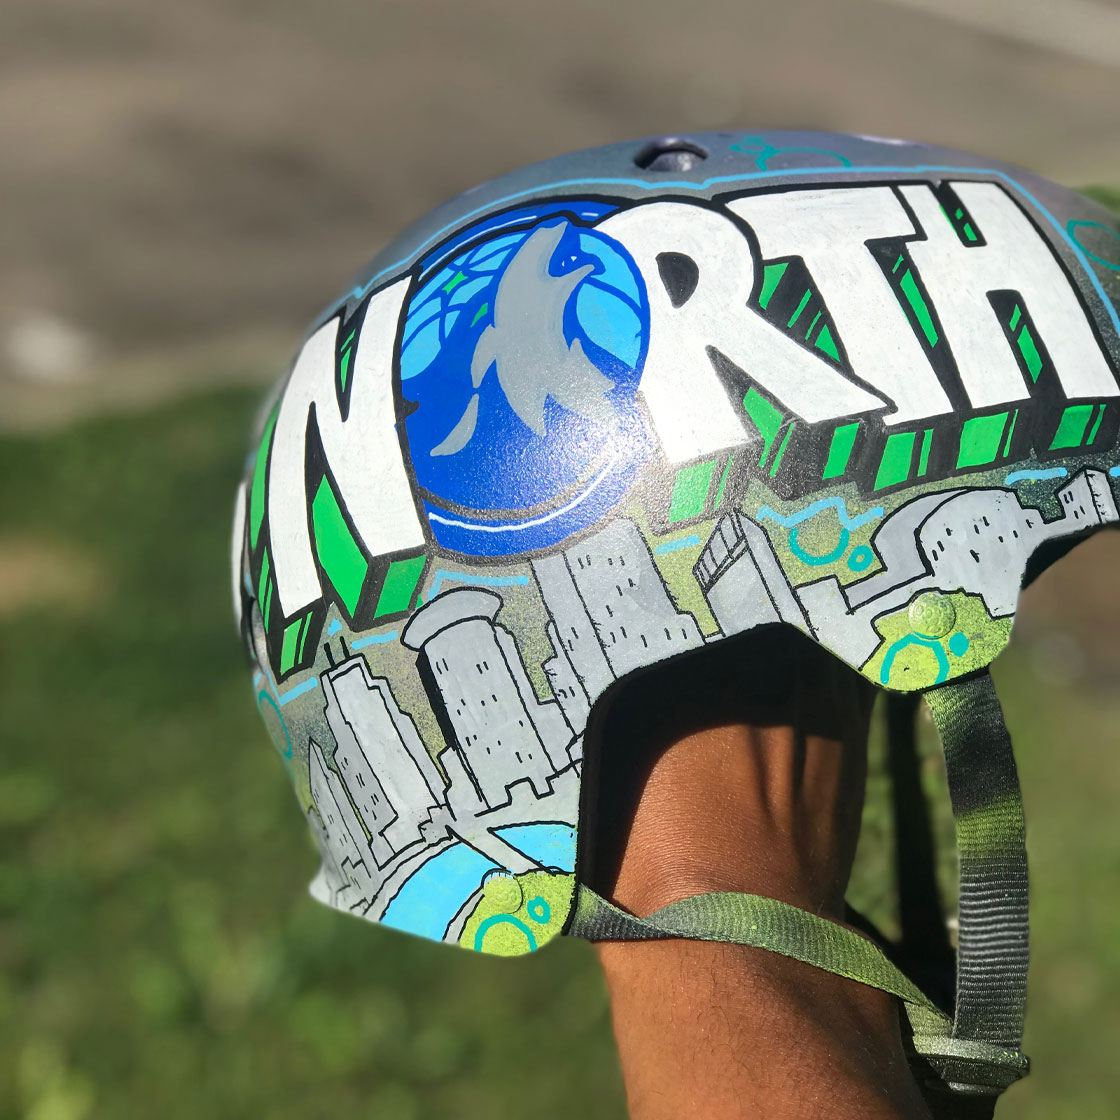 Someone holding a skateboarding helmet decorated with the words All Eyes North